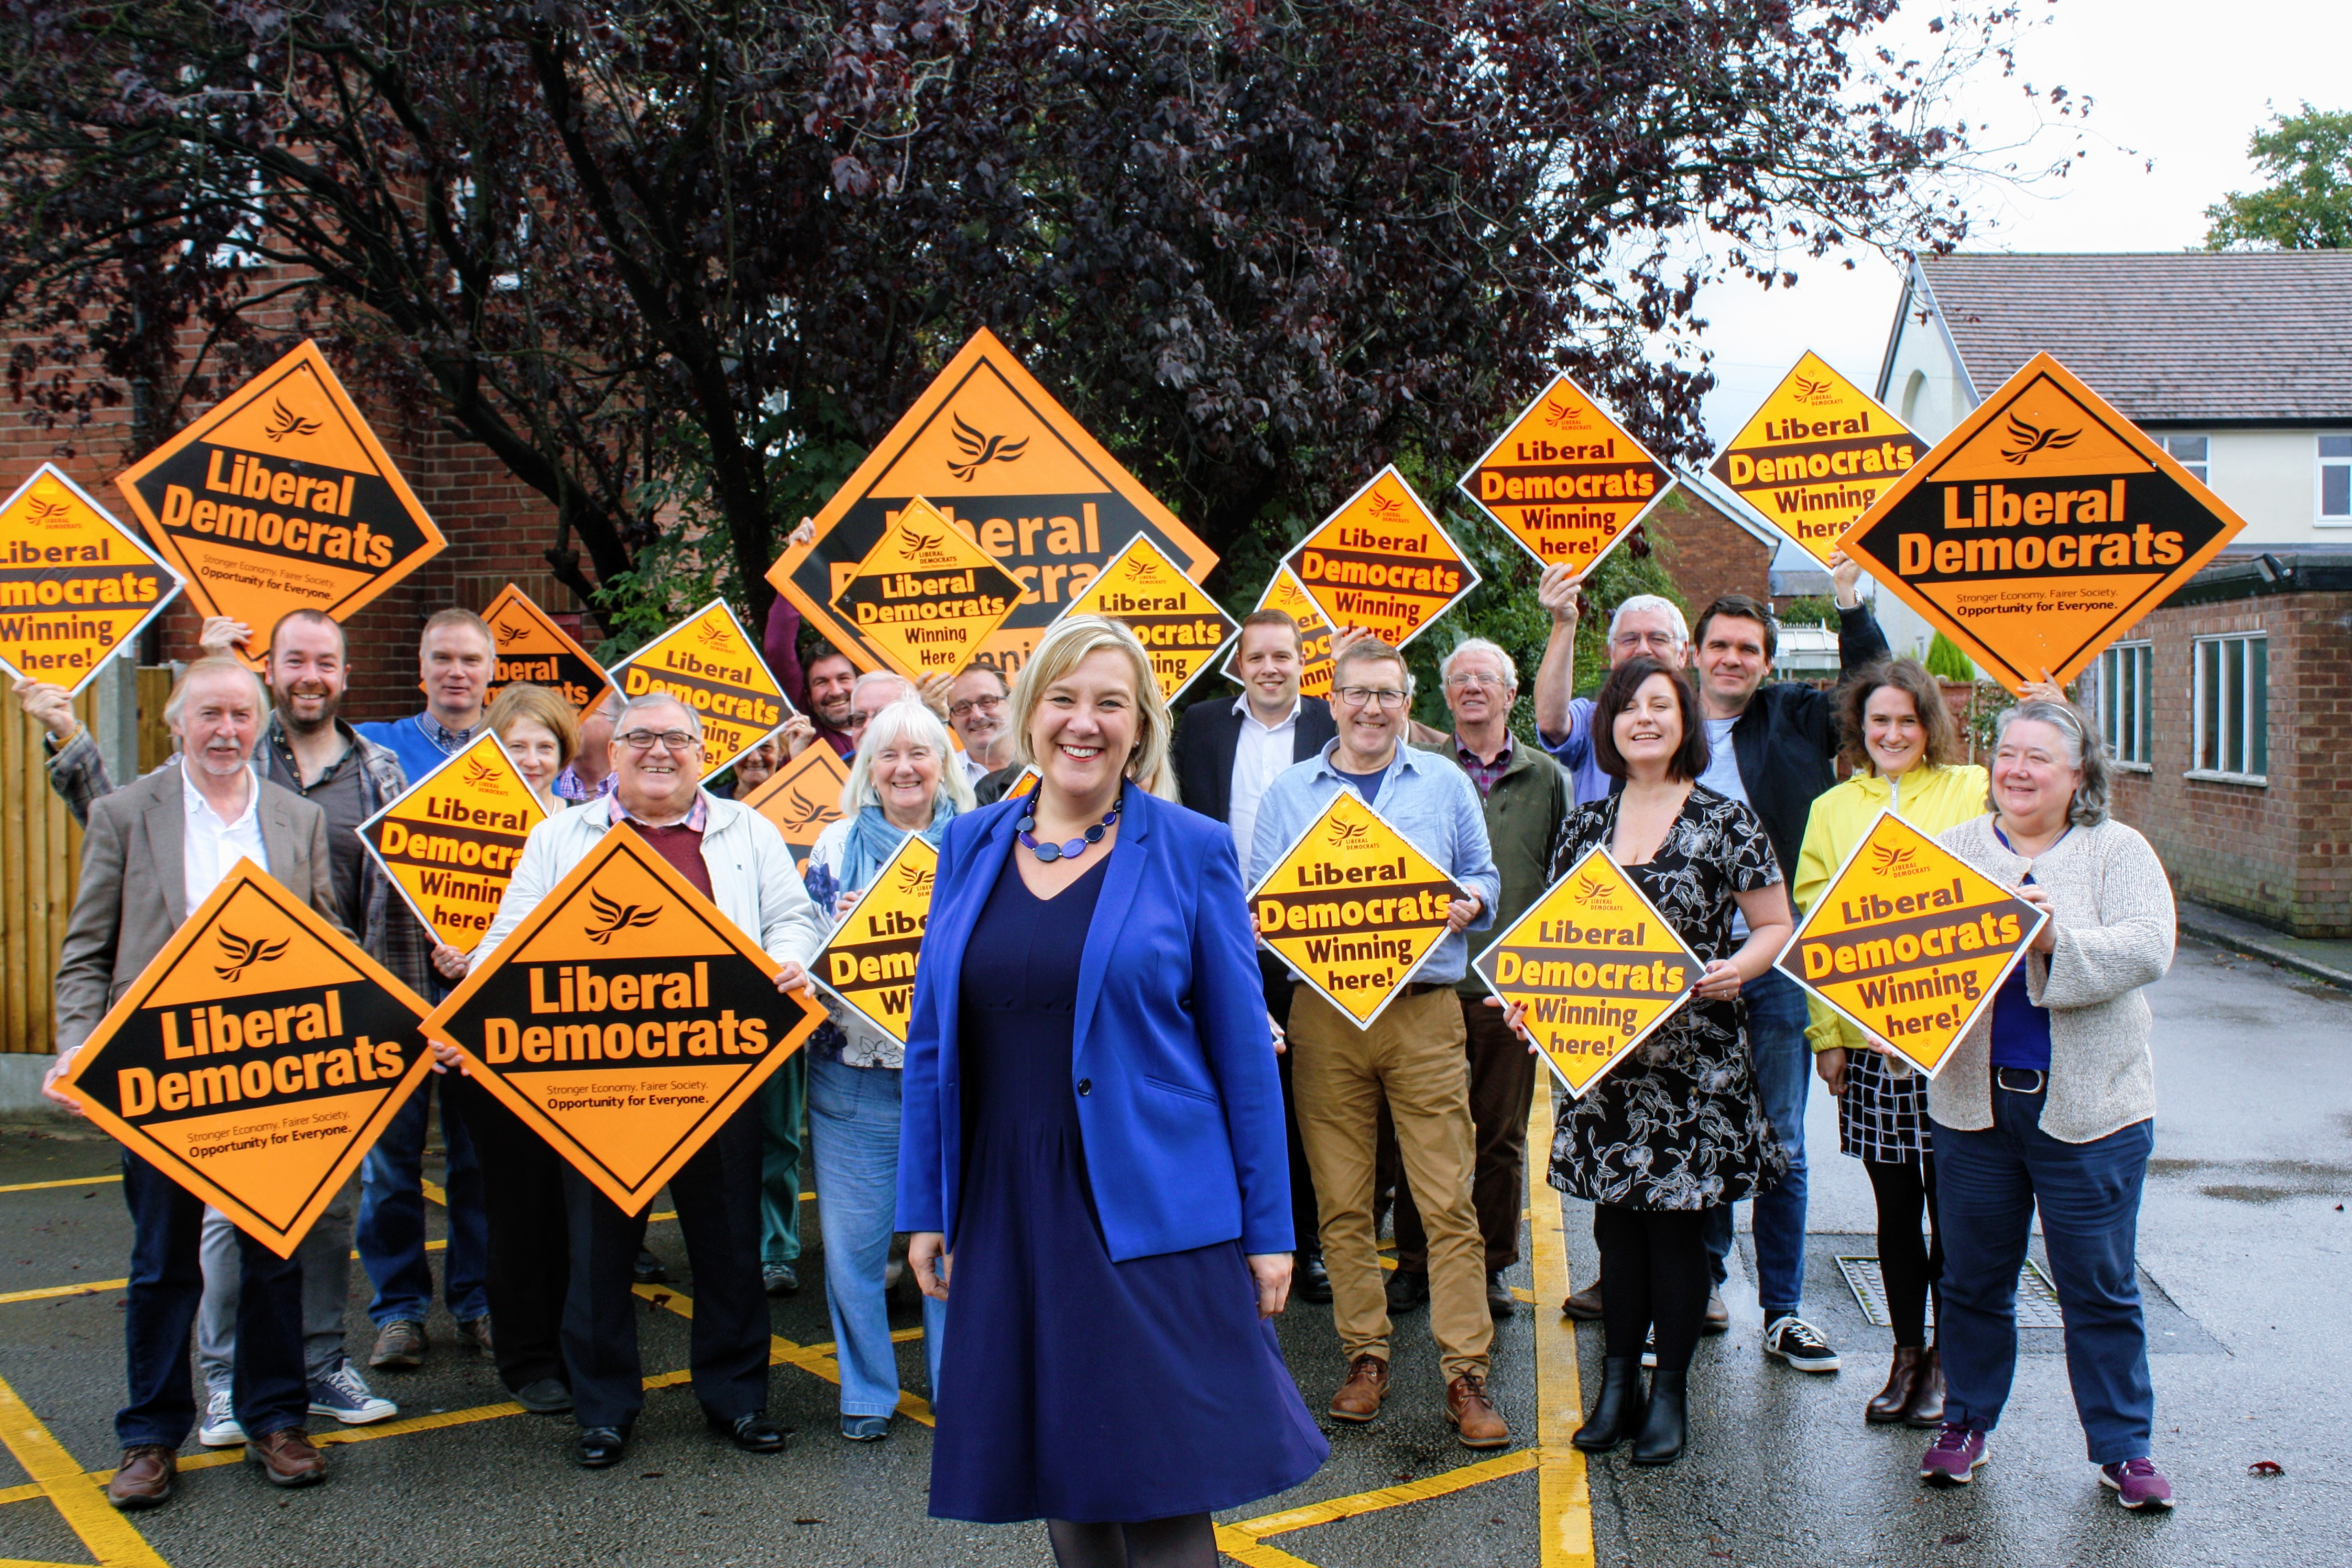 Lisa Smart surrounded by a crowd of Hazel Grove Liberal Democrats holding Lib Dem diamond signs